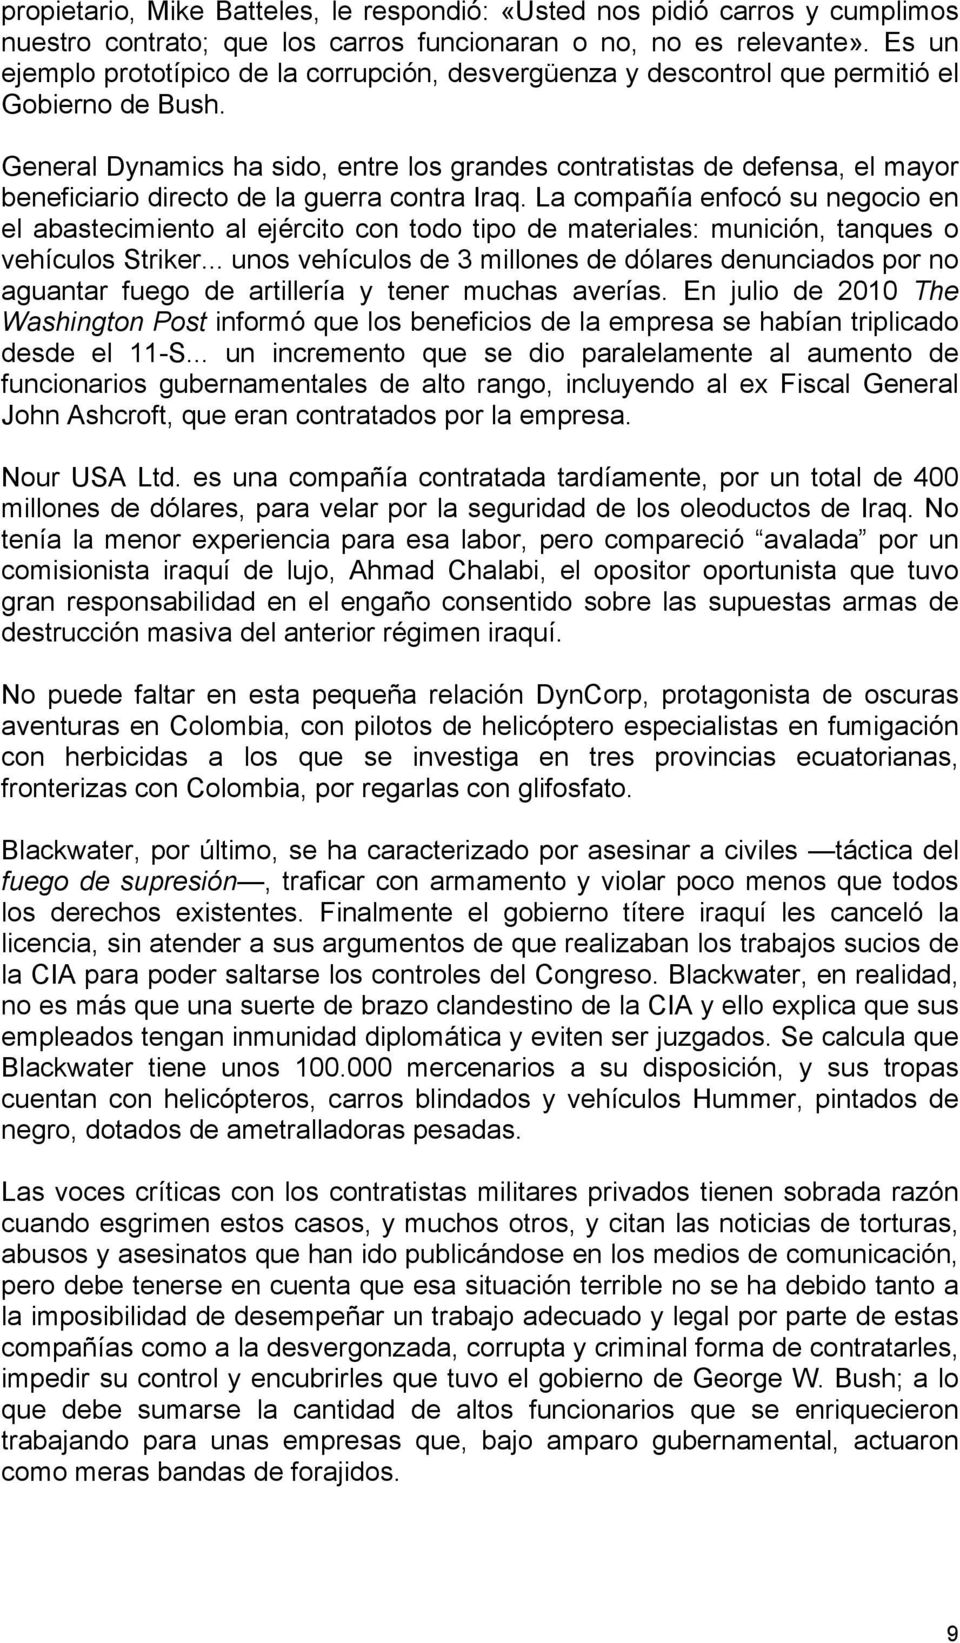 General Dynamics ha sido, entre los grandes contratistas de defensa, el mayor beneficiario directo de la guerra contra Iraq.